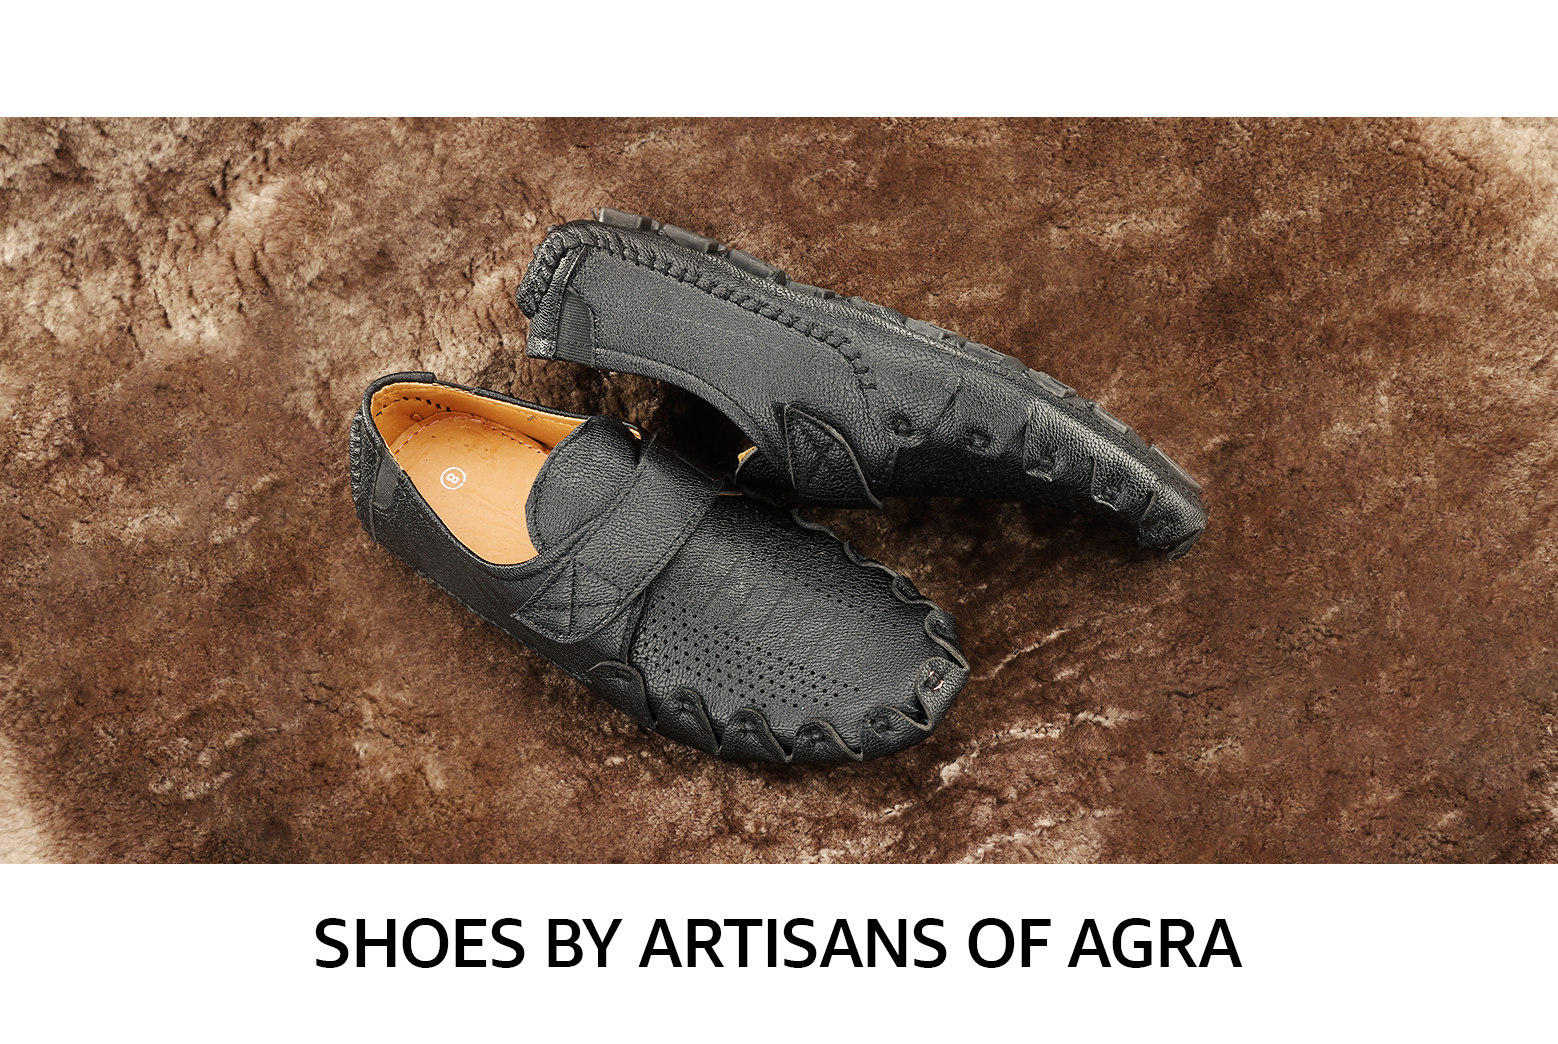 Agra shoes